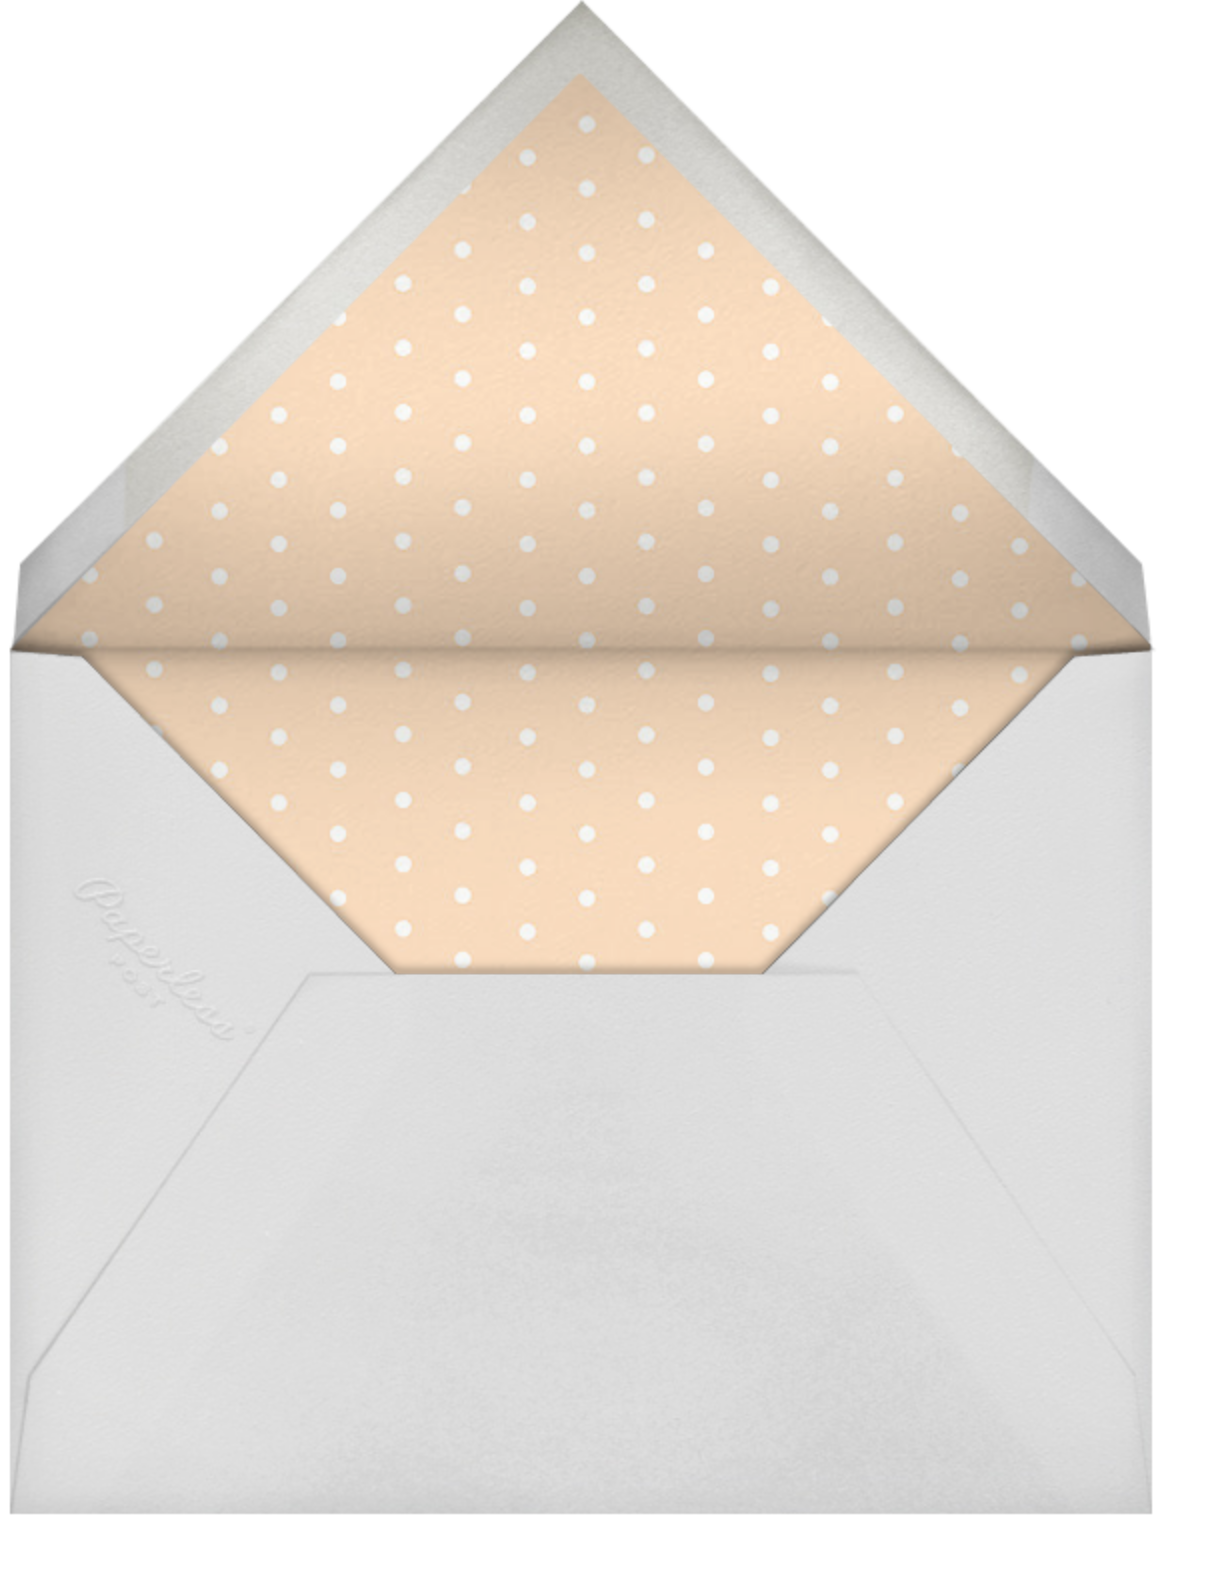 Hot Air Balloon Cluster - White/Bellini - Paperless Post - Save the date - envelope back